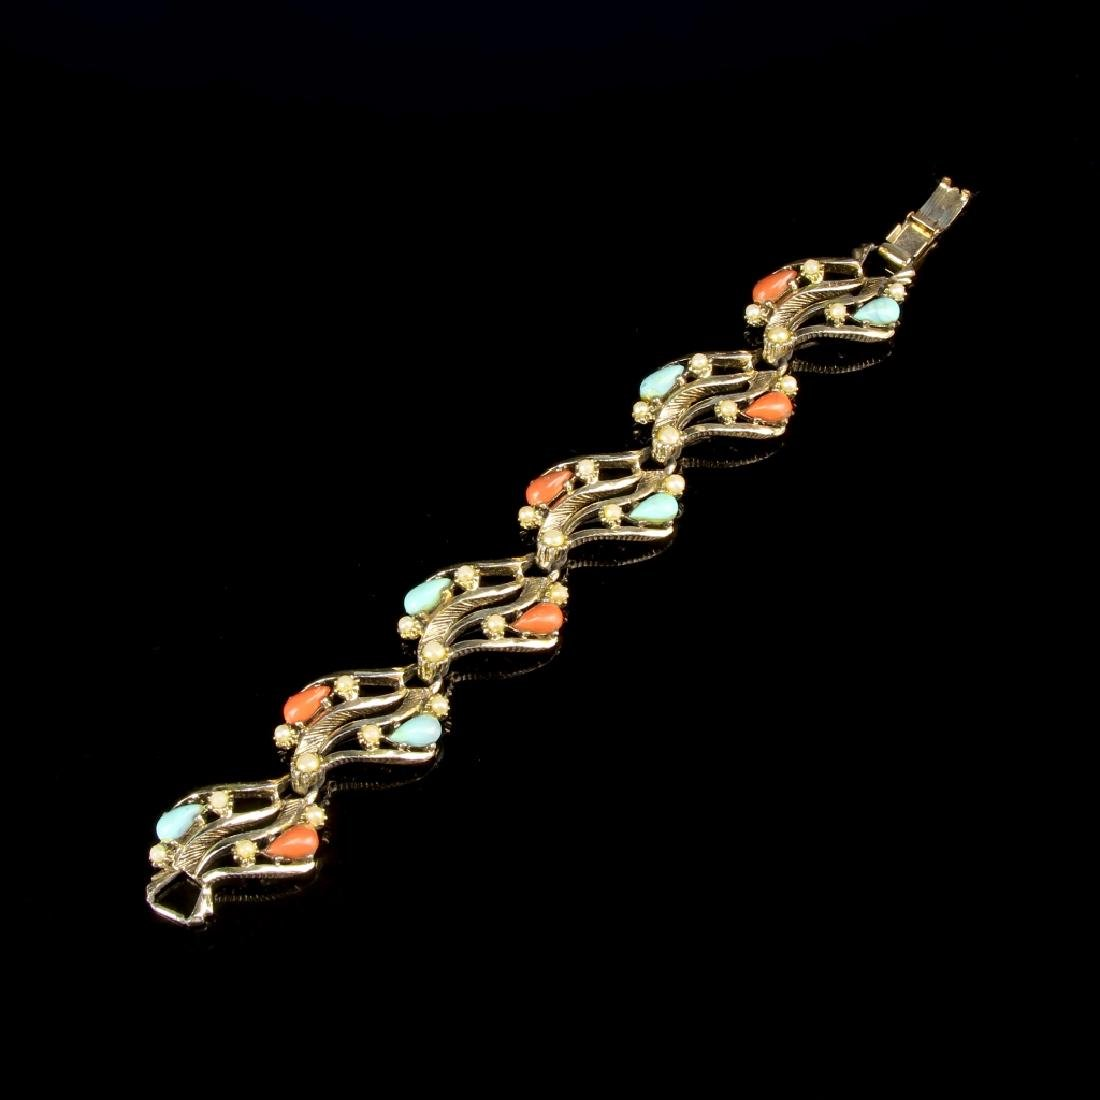 Chinese Bracelet with Turquoise and Coral